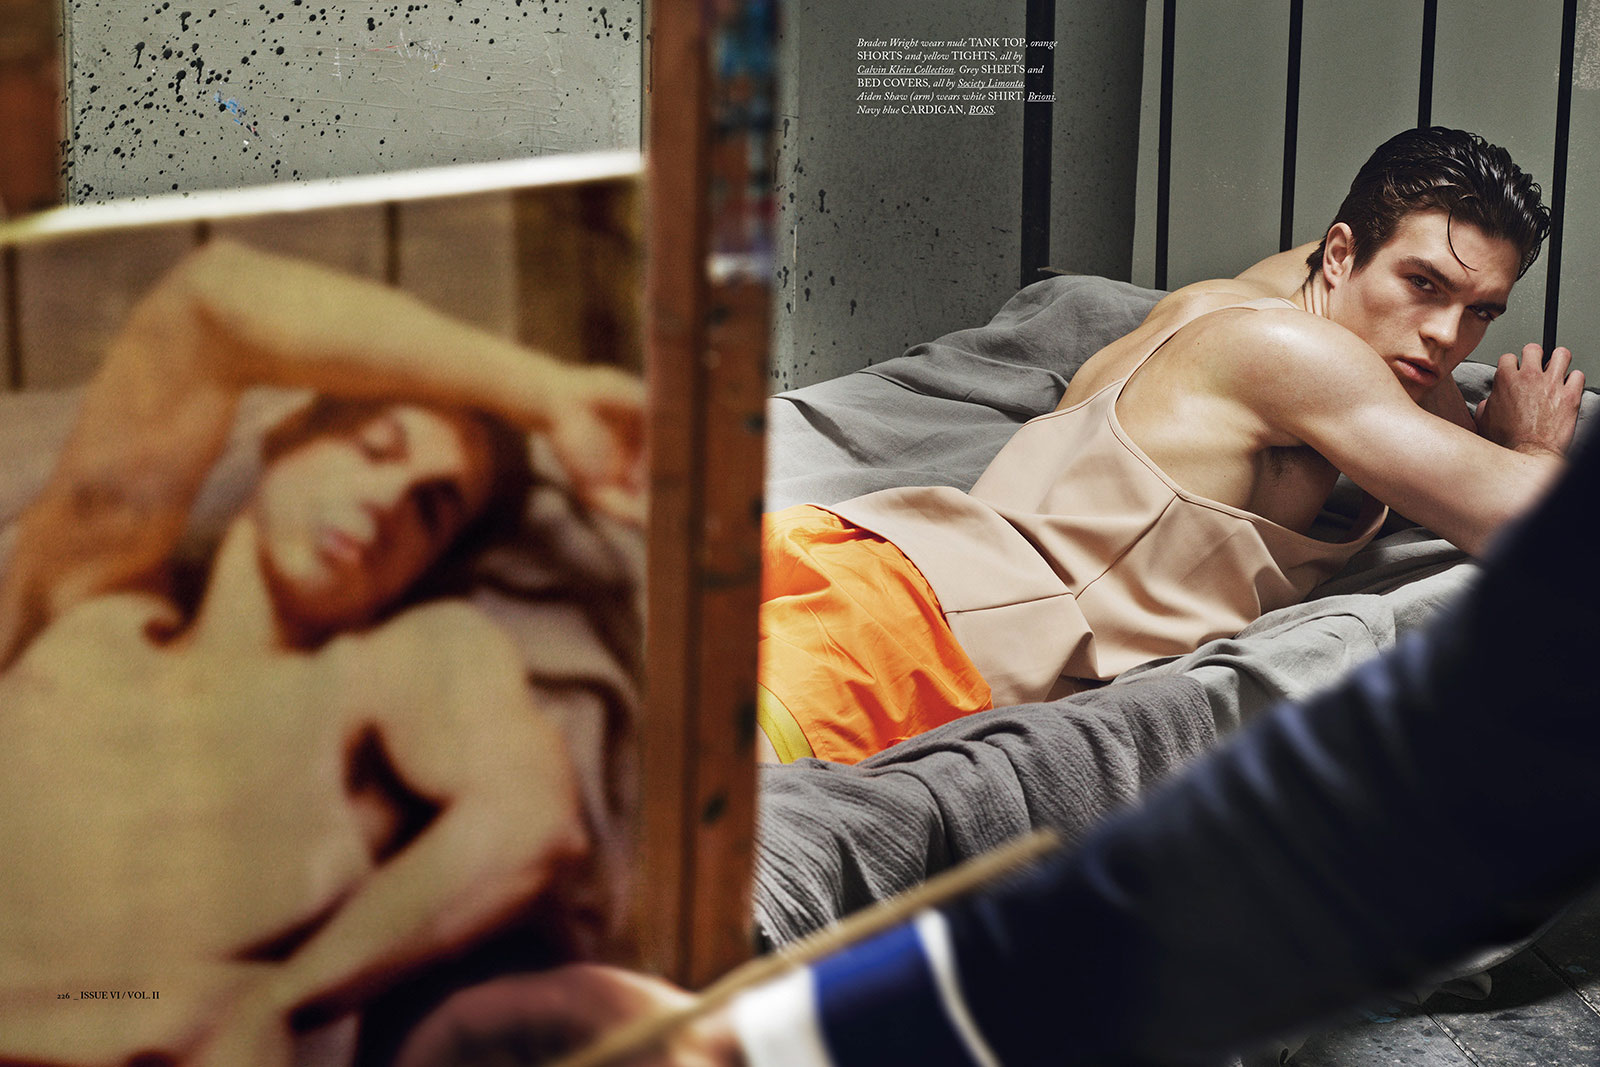 Accidental-Vocation-by-Giampaolo-Sgura-For-Hercules-Universal-SS-2015-Issue-DerriusPierreCom-7